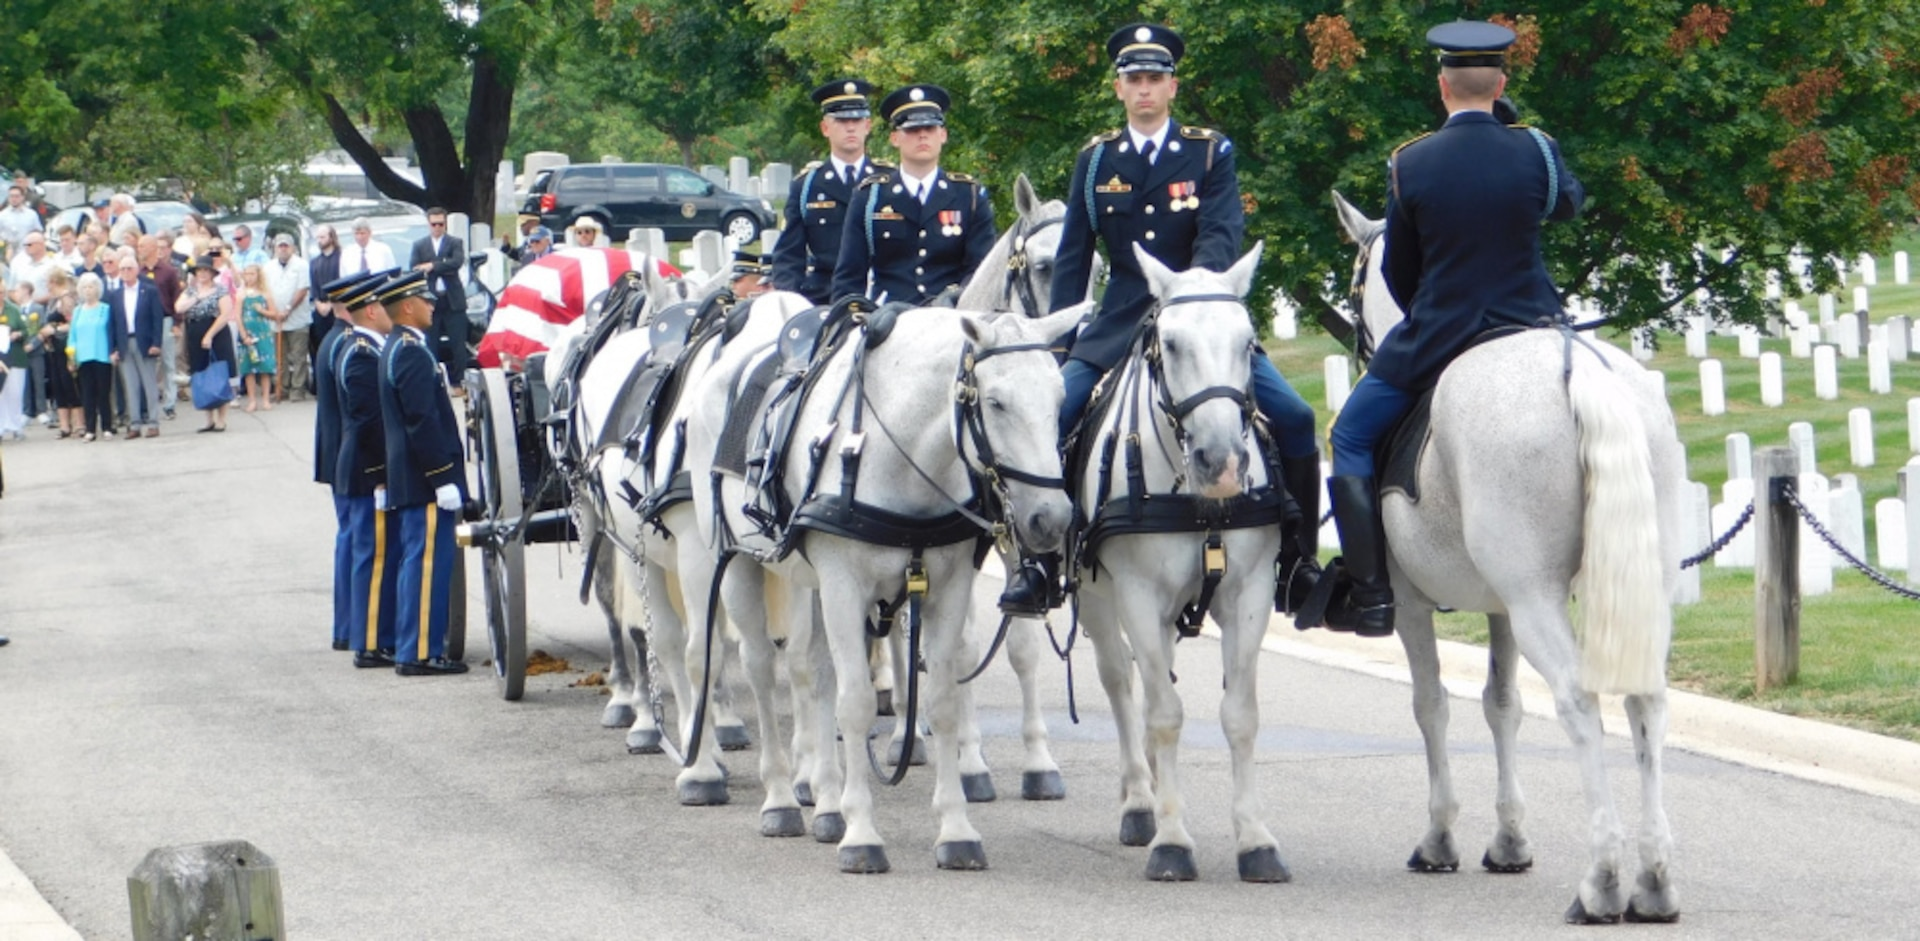 The 3rd Infantry Regiment, also known as the Old Guard, escorts the remains of Army Major Harvey Storms who was buried in Arlington National Cemetery on July 16, 2021. Major Storms was reported missing in action on Dec. 1, 1950, when his unit was attacked by enemy forces near the Chosin Reservoir, North Korea. Following the battle, his remains could not be recovered. The Defense POW/MIA Accounting Agency was able to identify the remains in 2019. (Defense Photo by Ashley M. Wright)